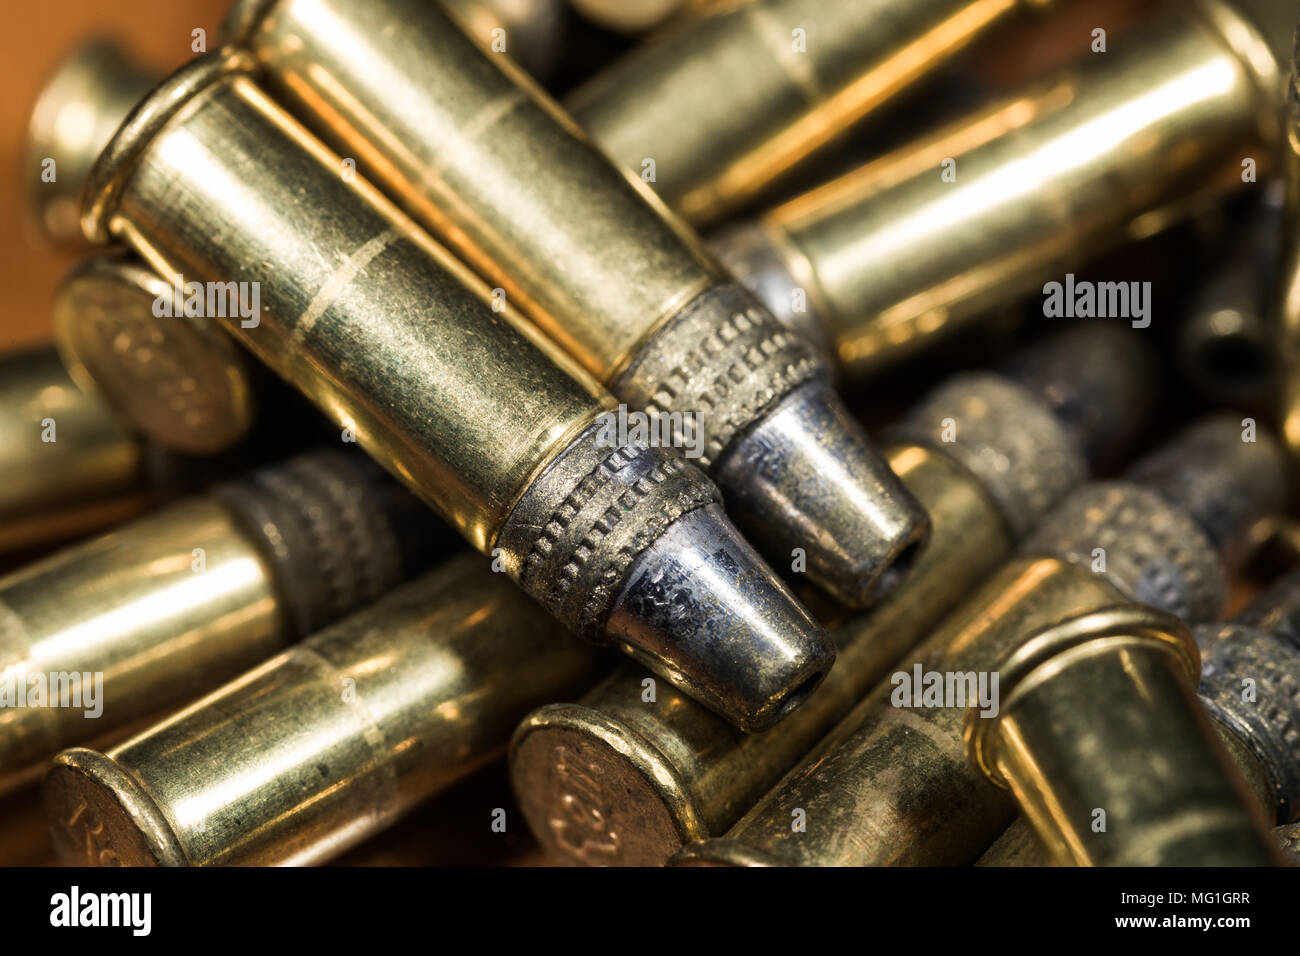 Truncated Cone 22LR Bullets - Stock Image